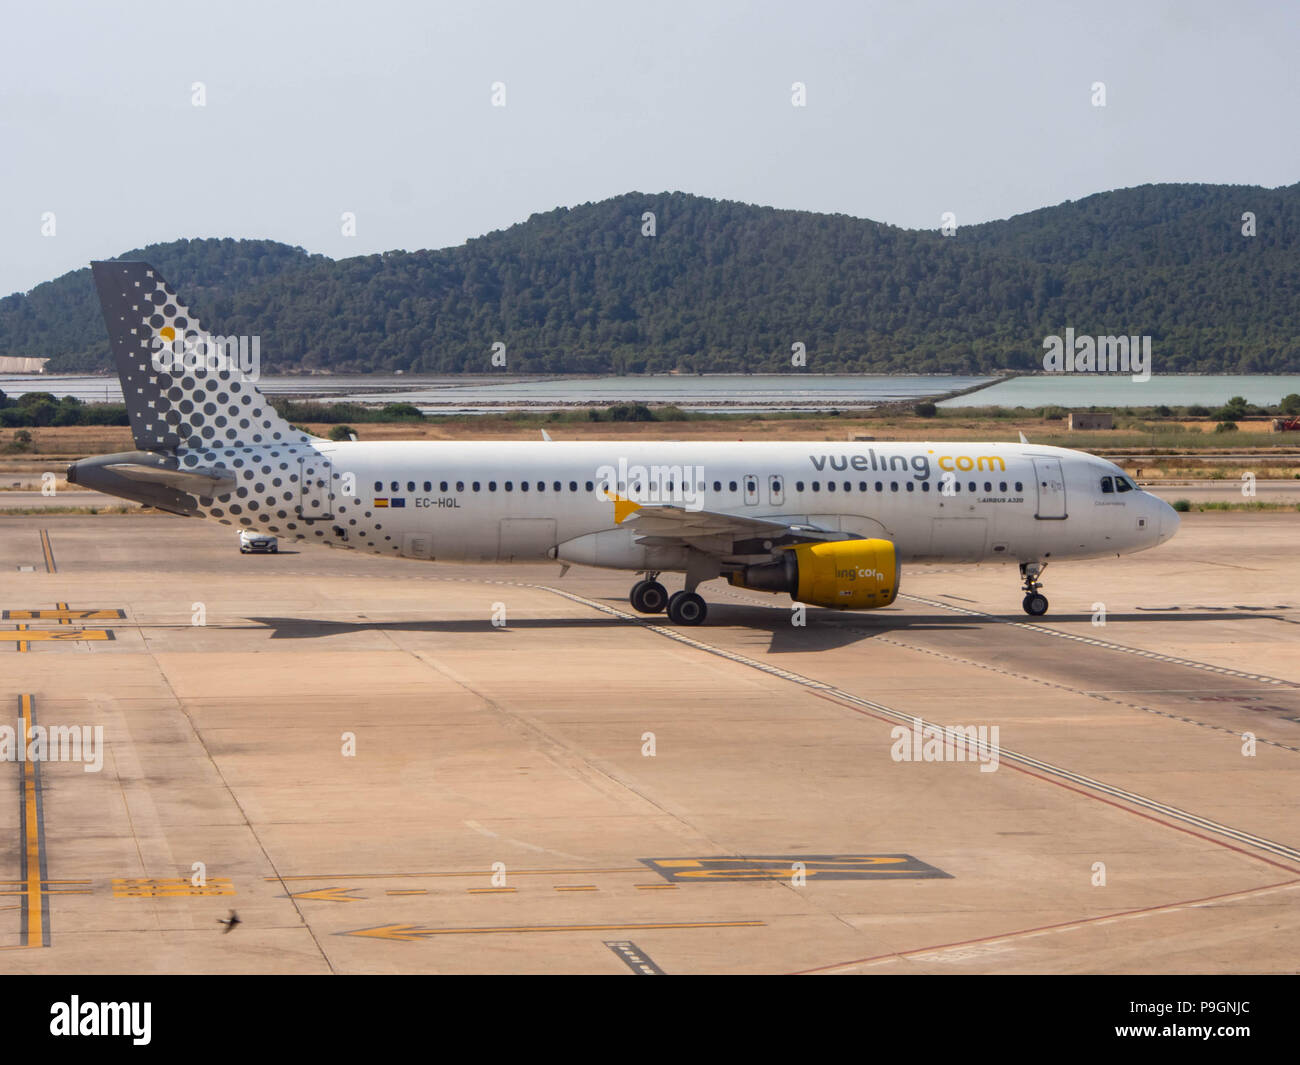 An Airbus A320 belonging to Vueling airlines - Stock Image